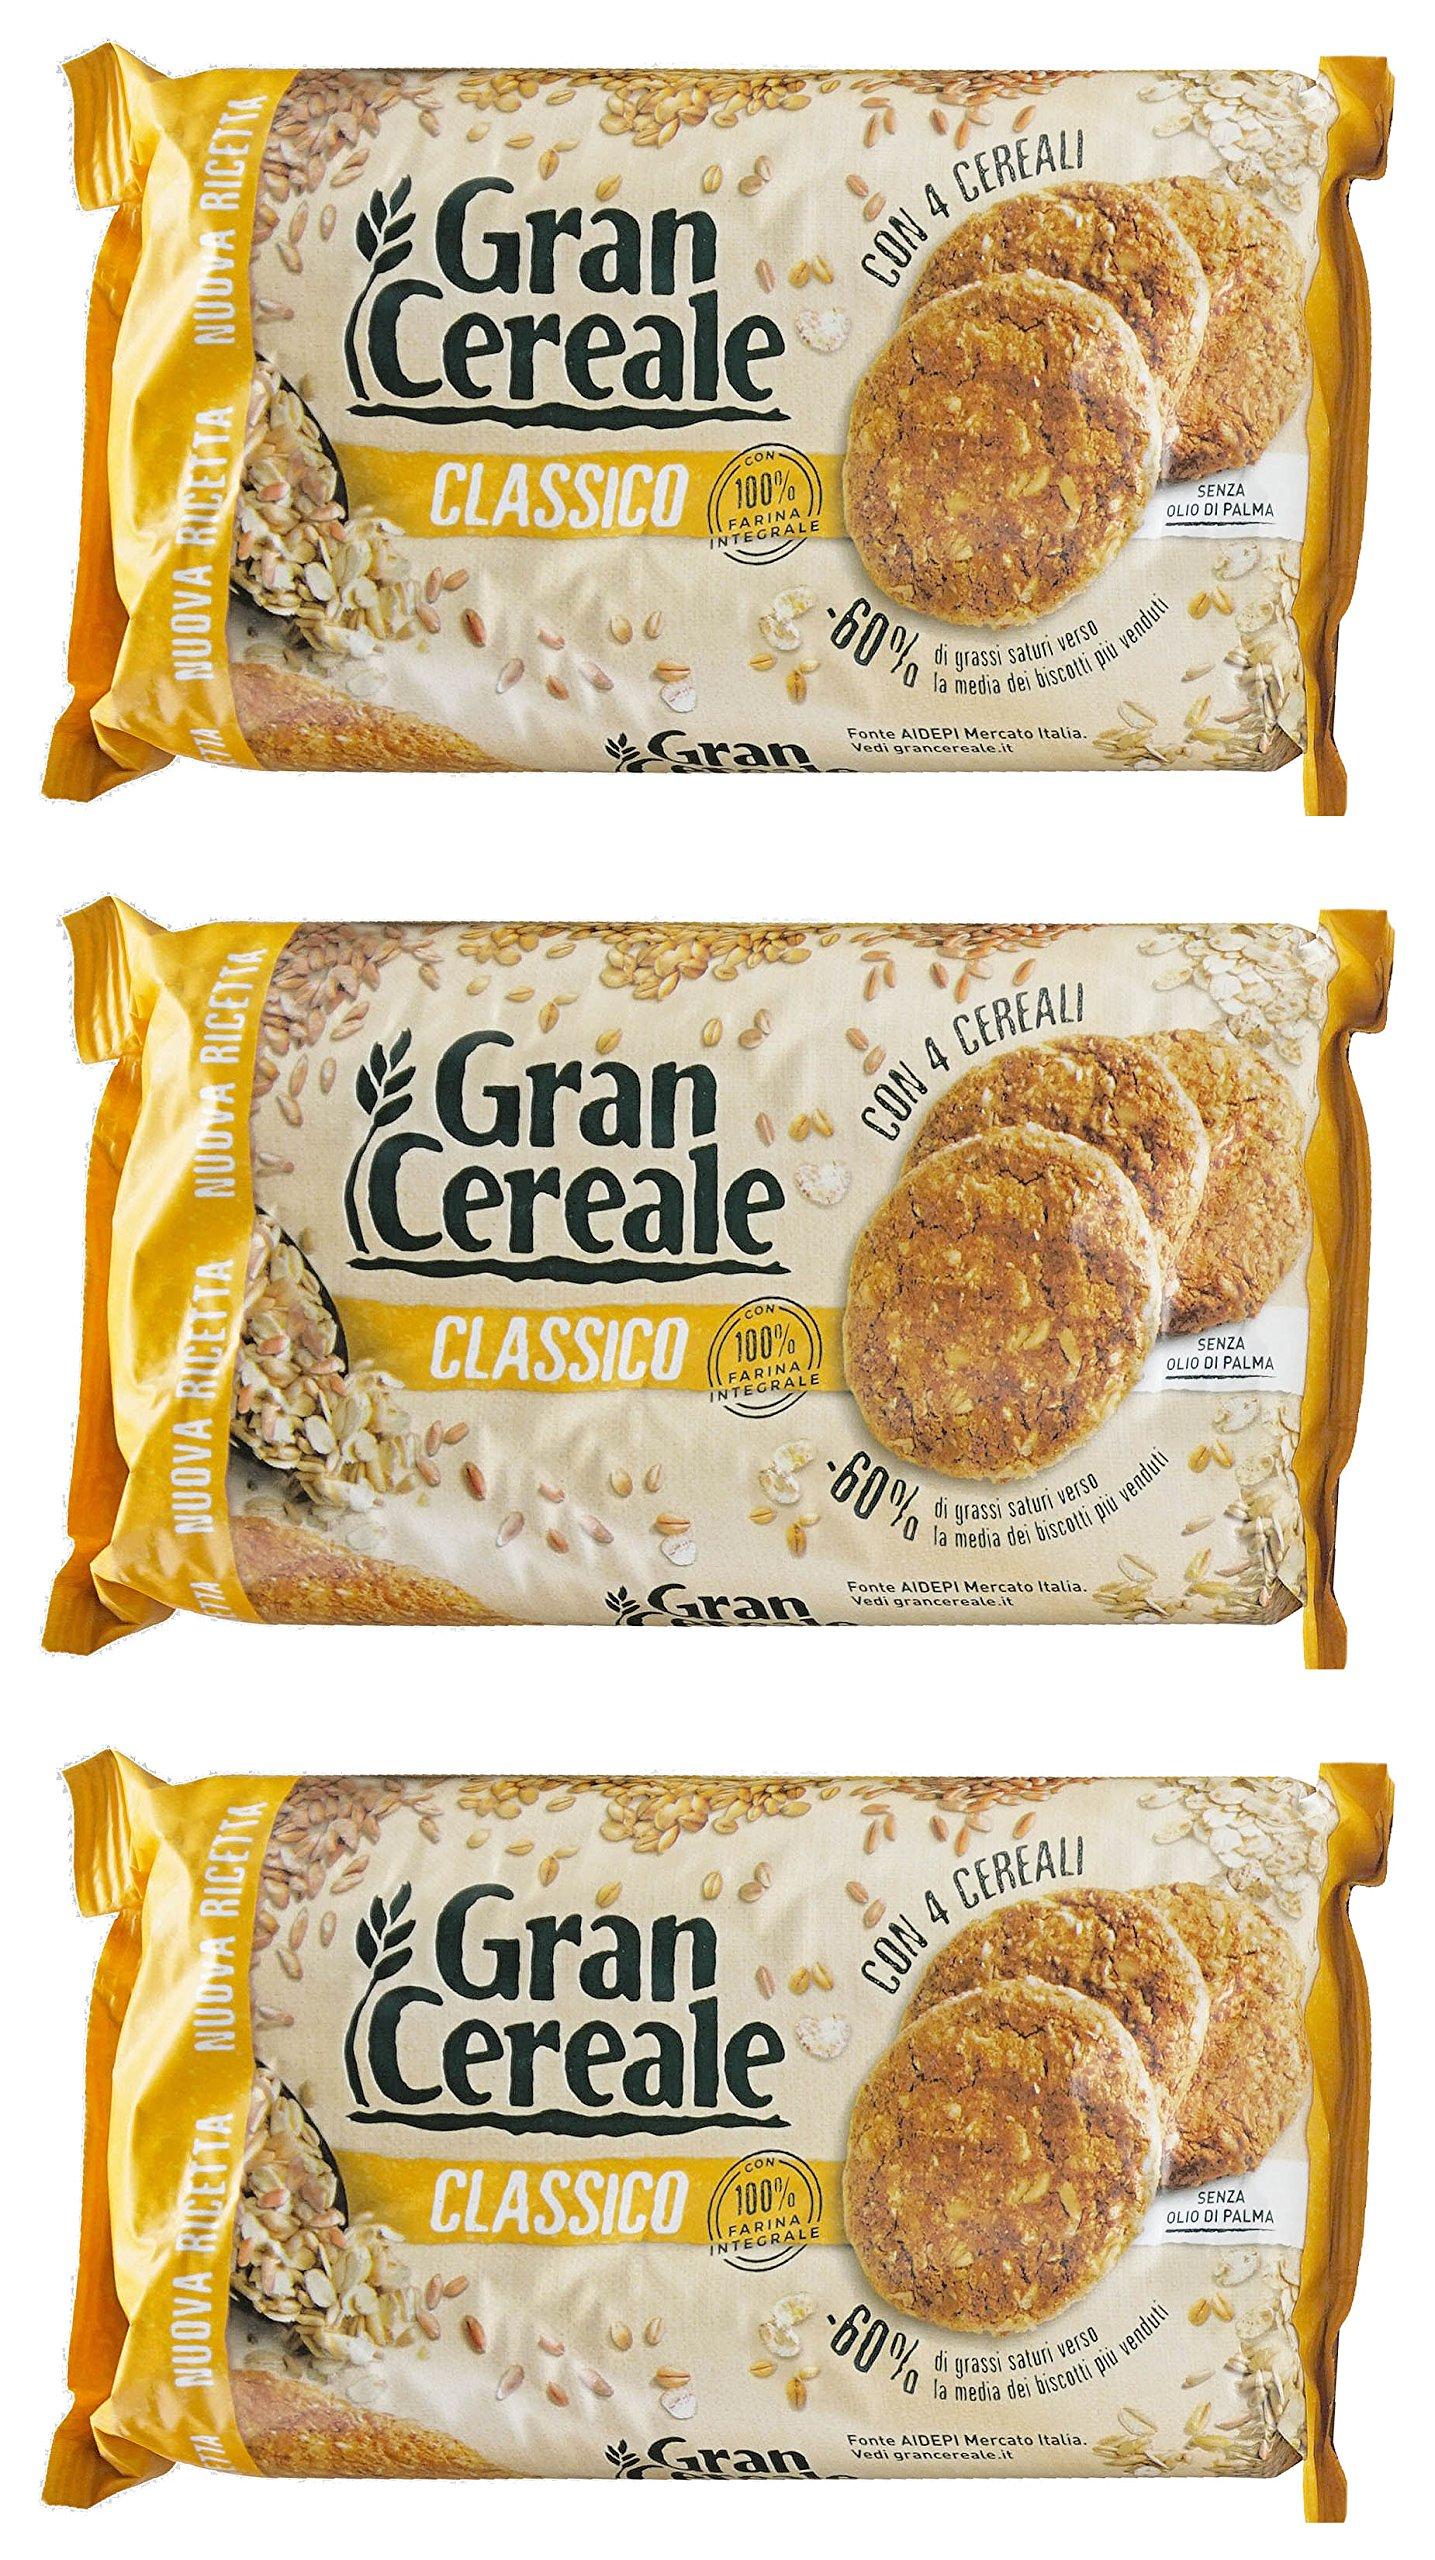 Mulino Bianco: ''Gran Cereale Classico'' Cereals Cookies (Classic Taste), High in Fibers Biscuits * 17.63 Ounces (500g) Packages (Pack of 3) * [ Italian Import ]